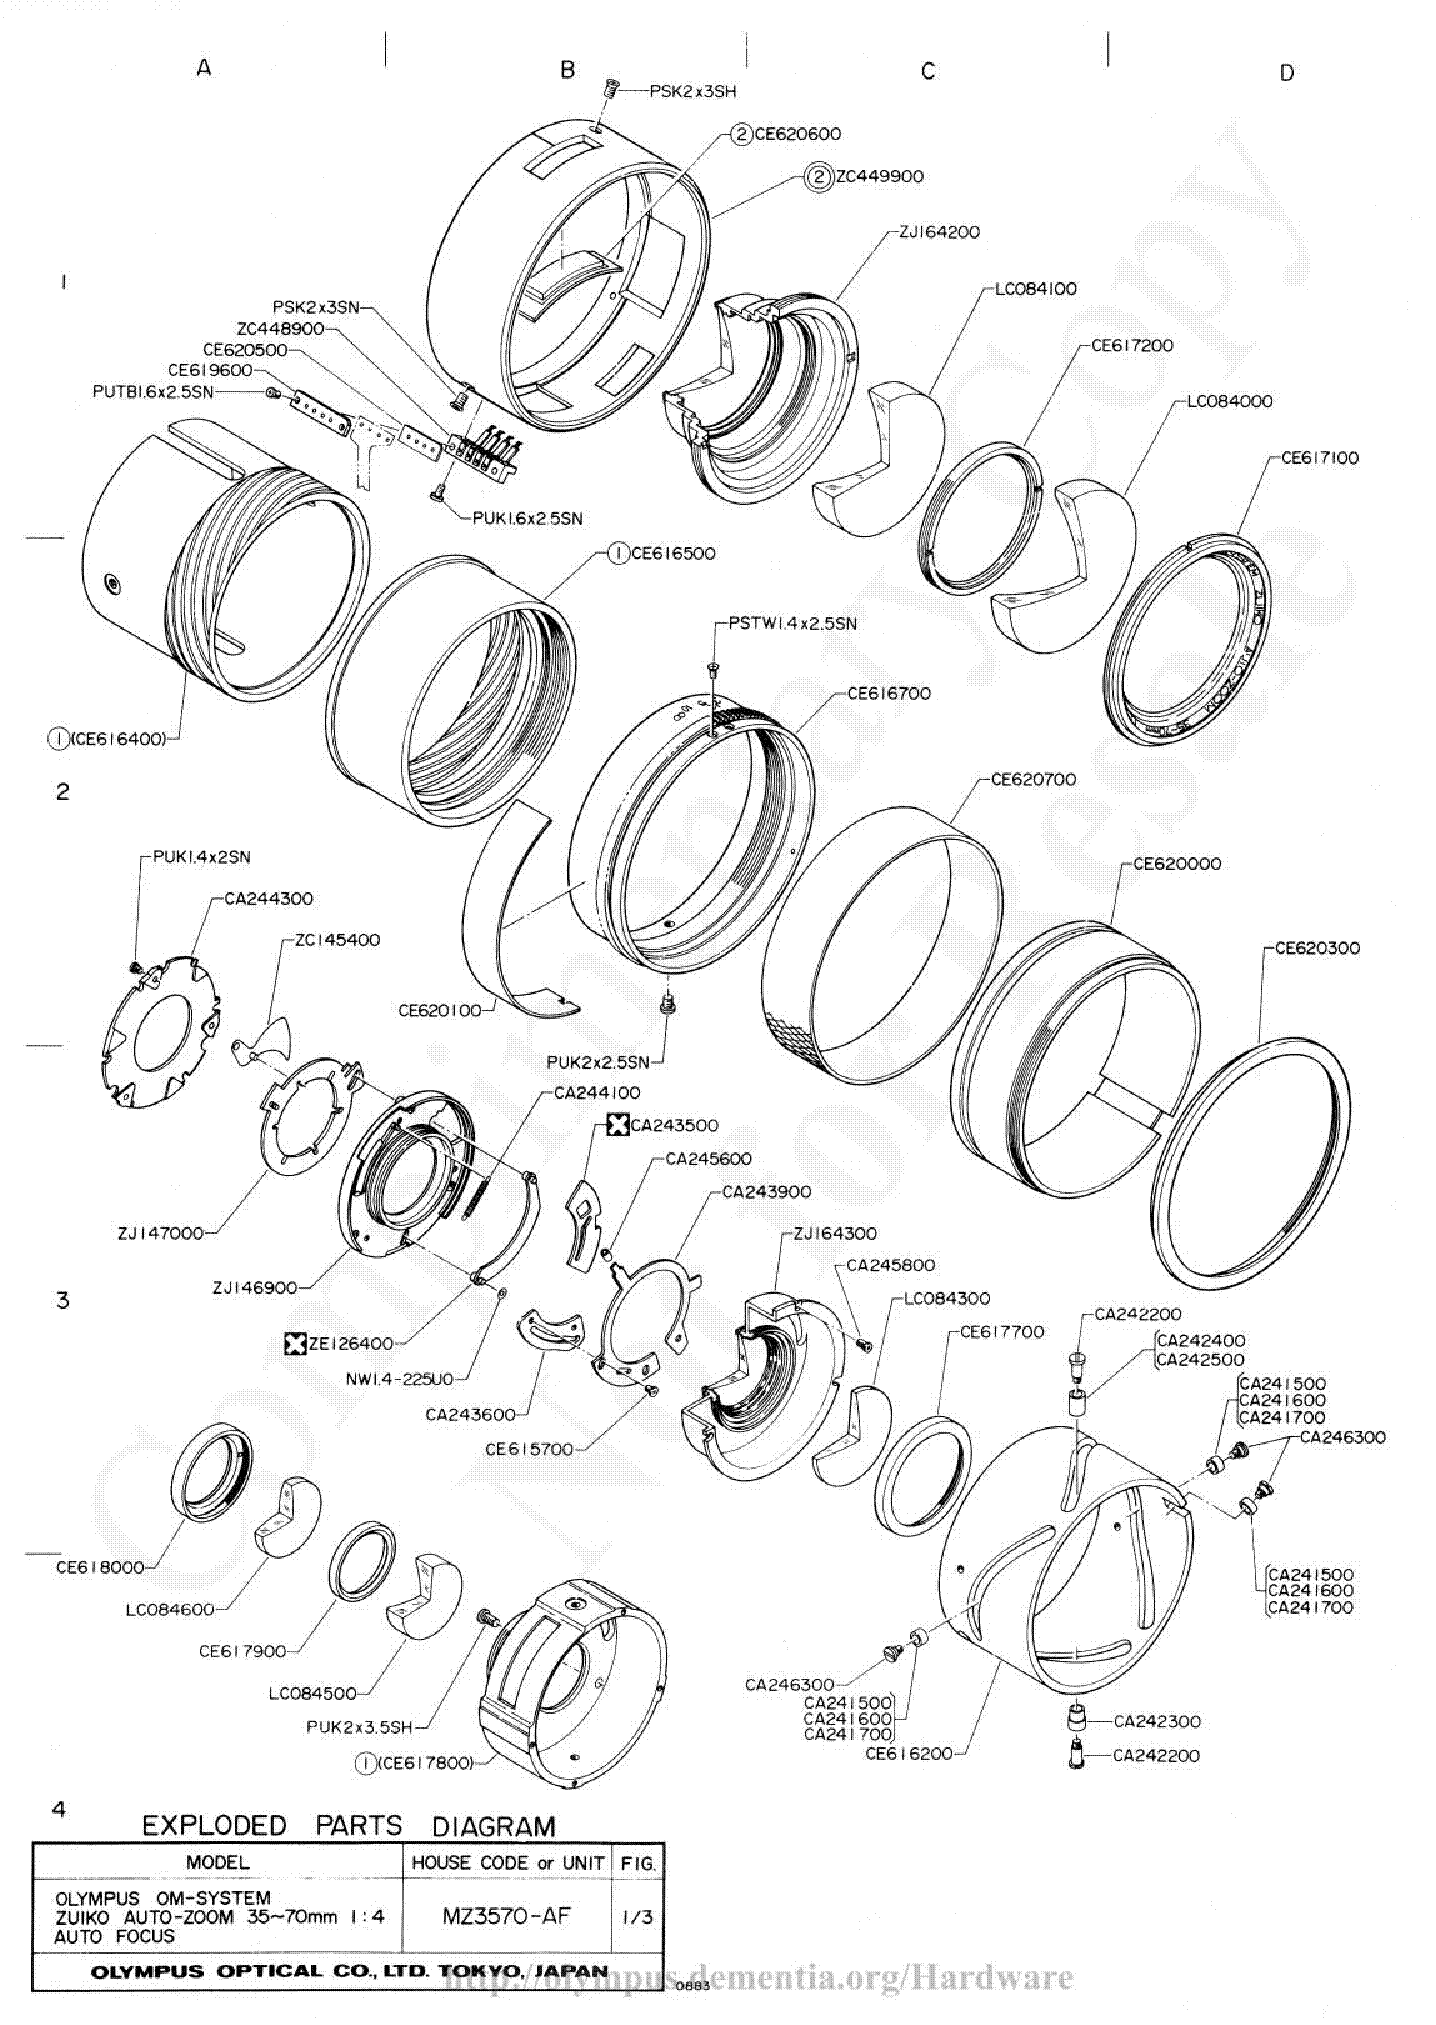 Olympus 35 70mm F4 Af Exploded Parts Diagram Service